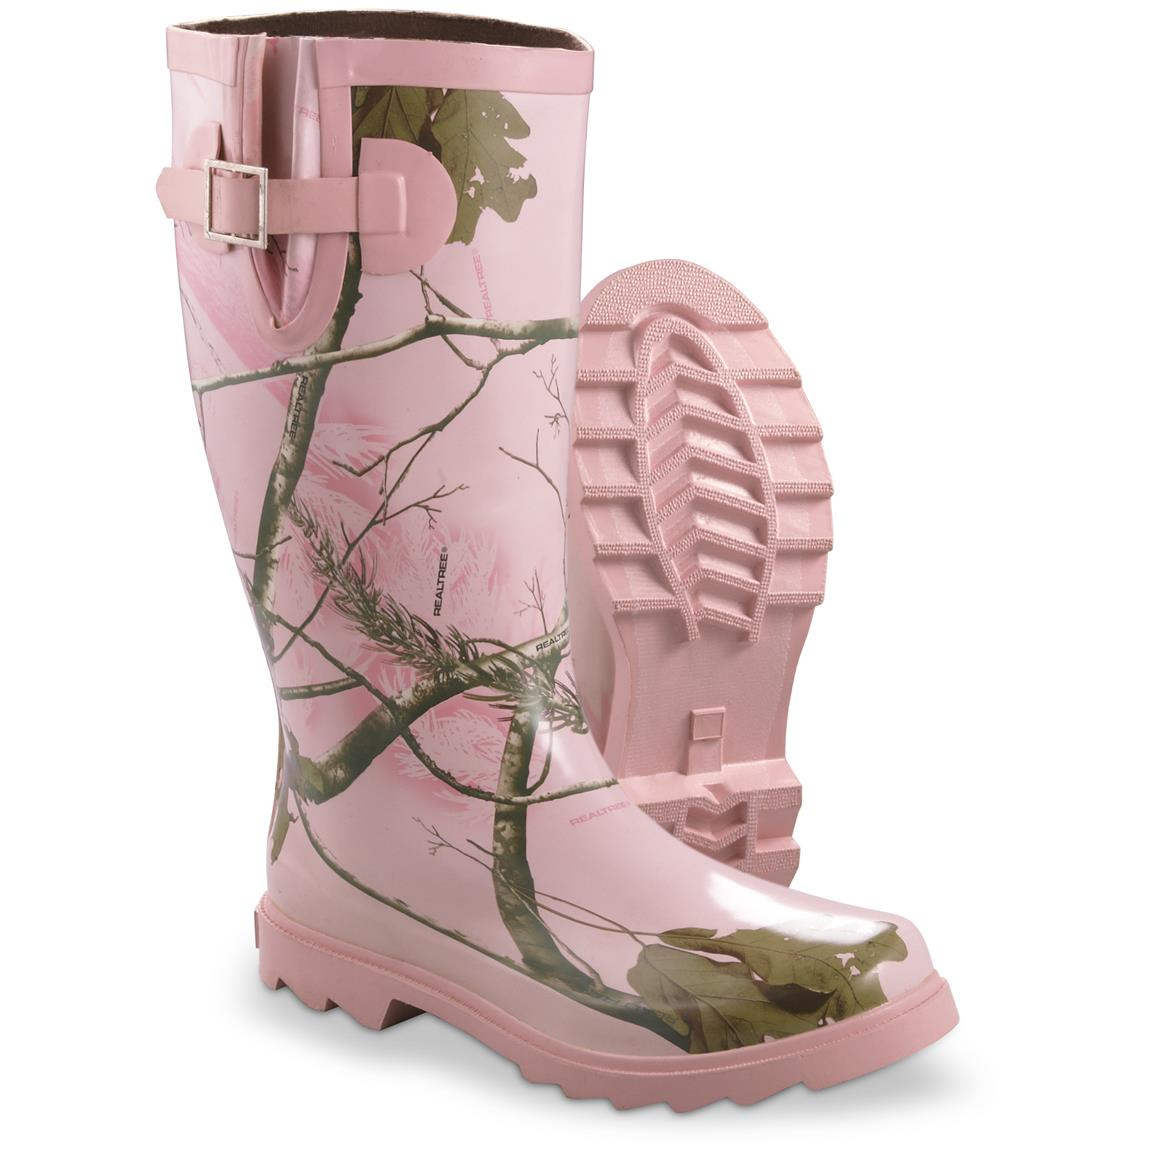 Realtree Girl Women's Ms. JoJo Rain Boots, Realtree MAX-1 Pink